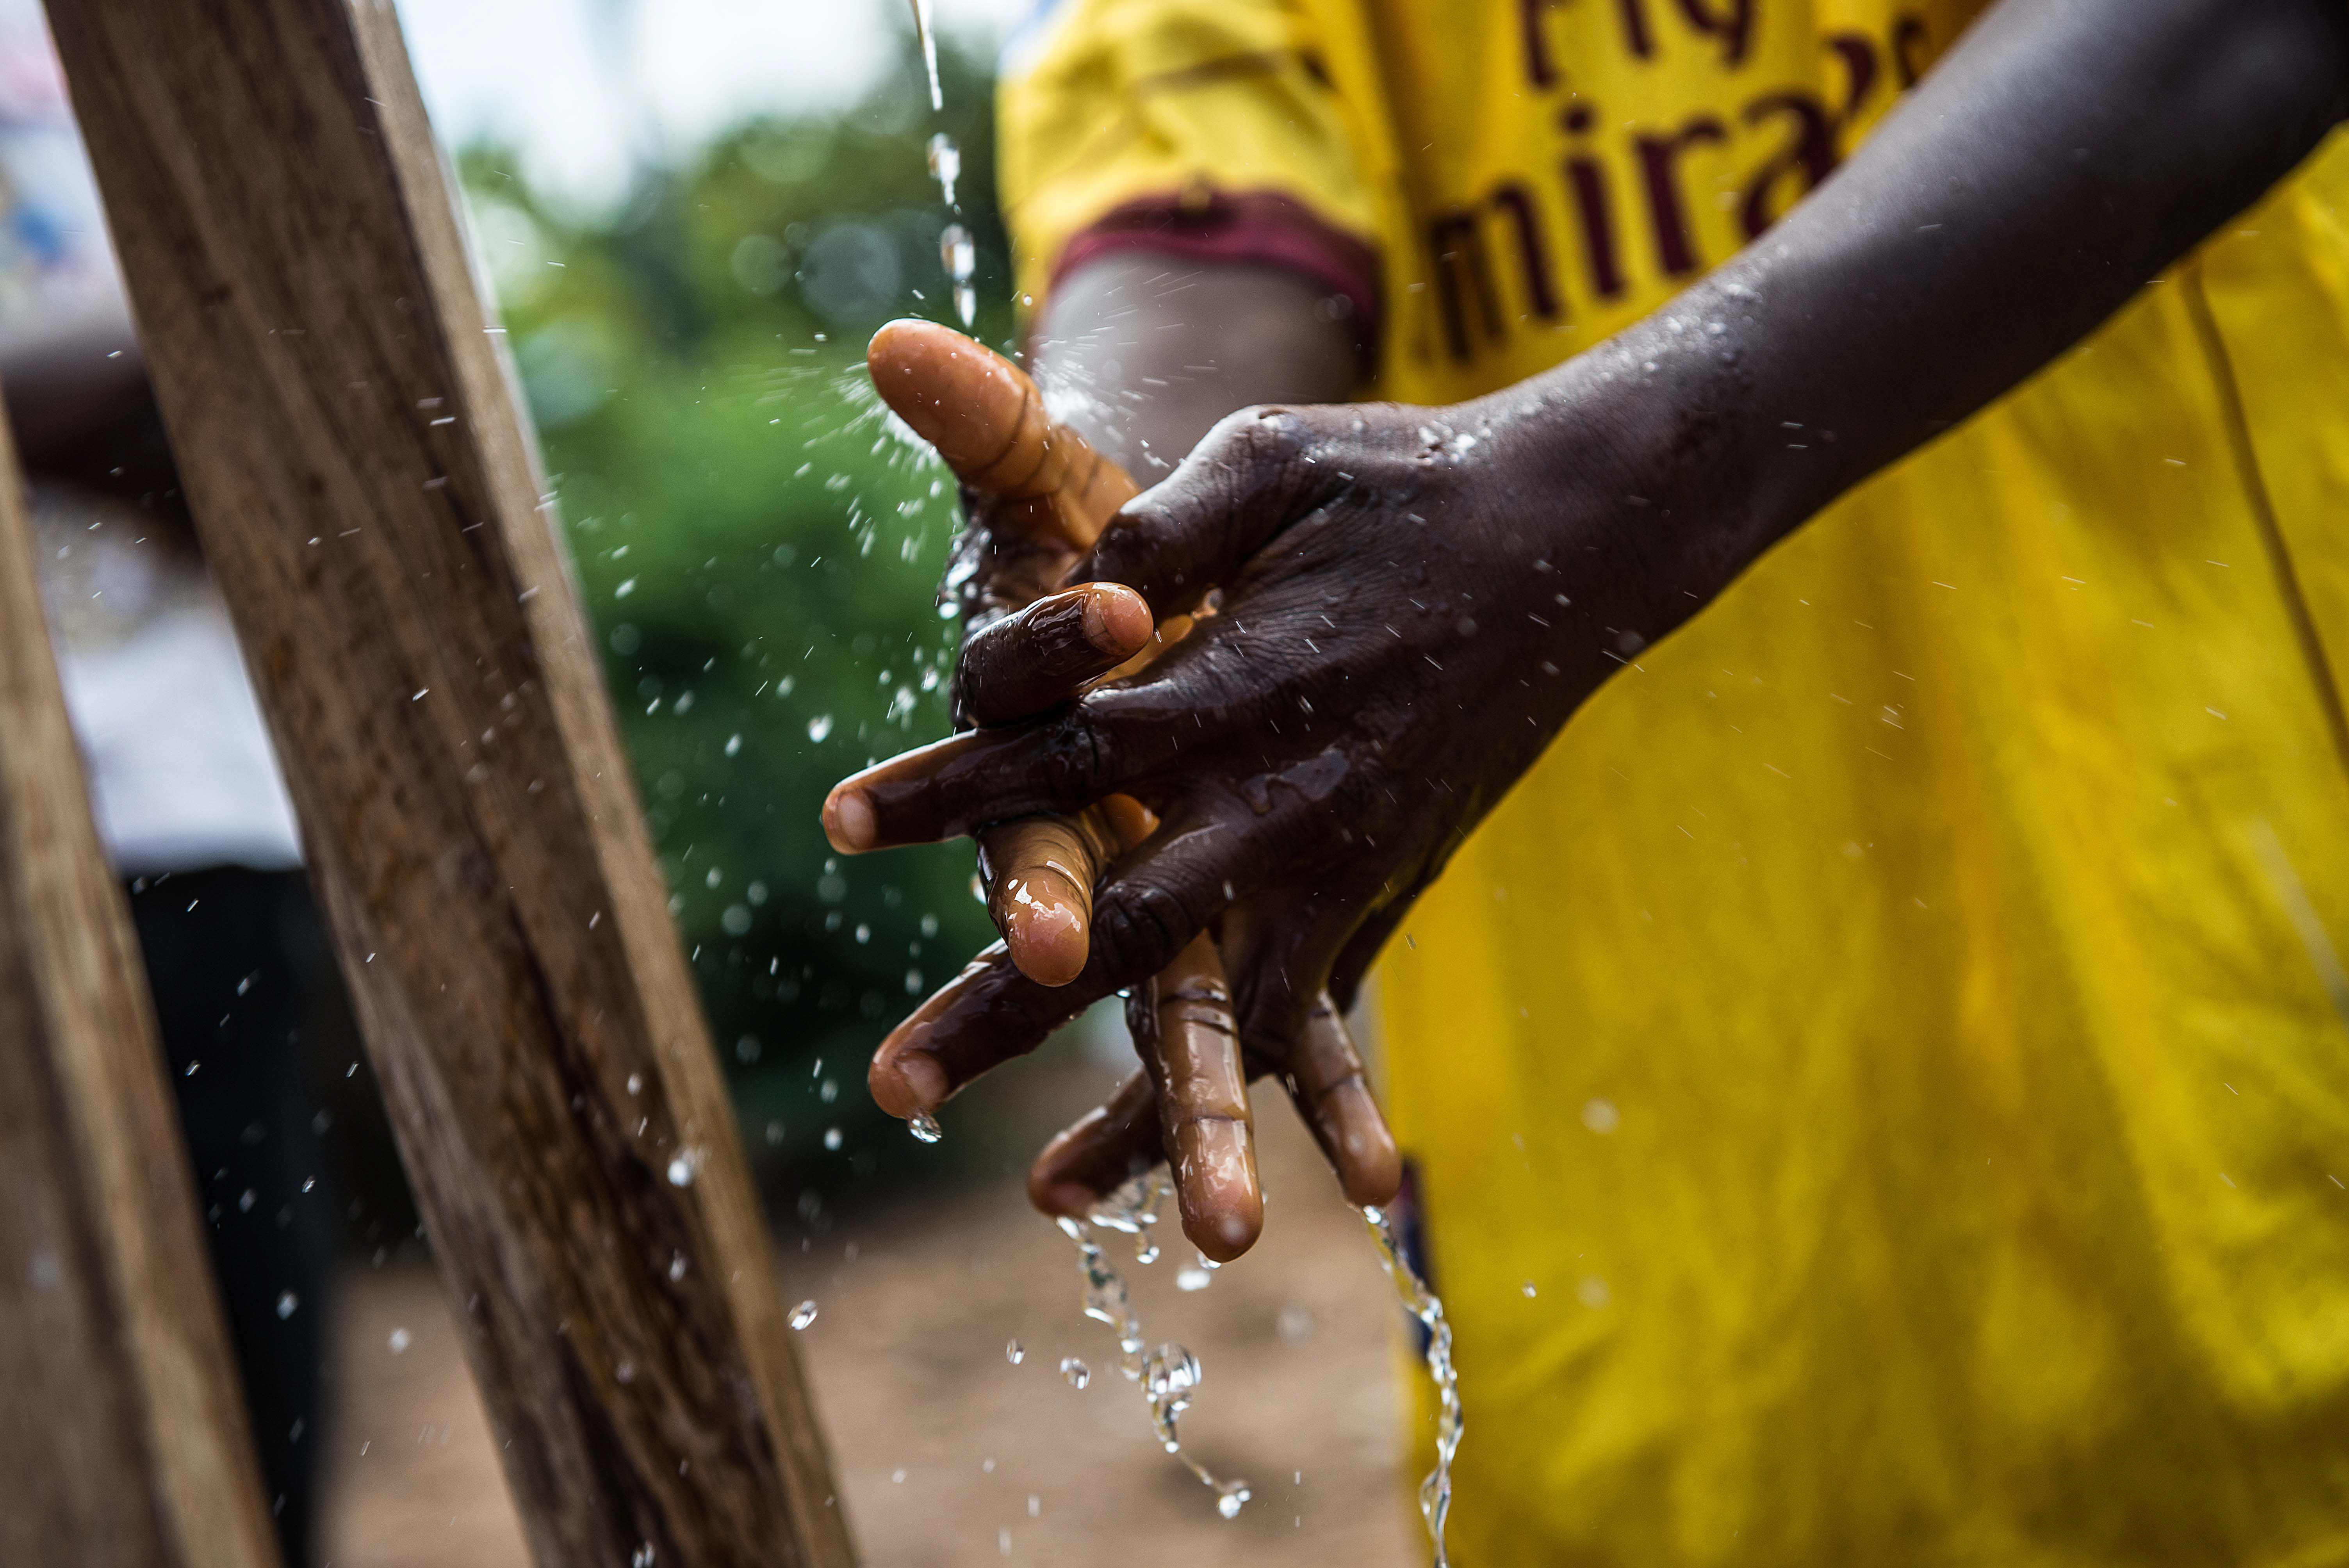 To ensure there are no spikes in new cases of Ebola, hygiene and prevention projects remain a priority.